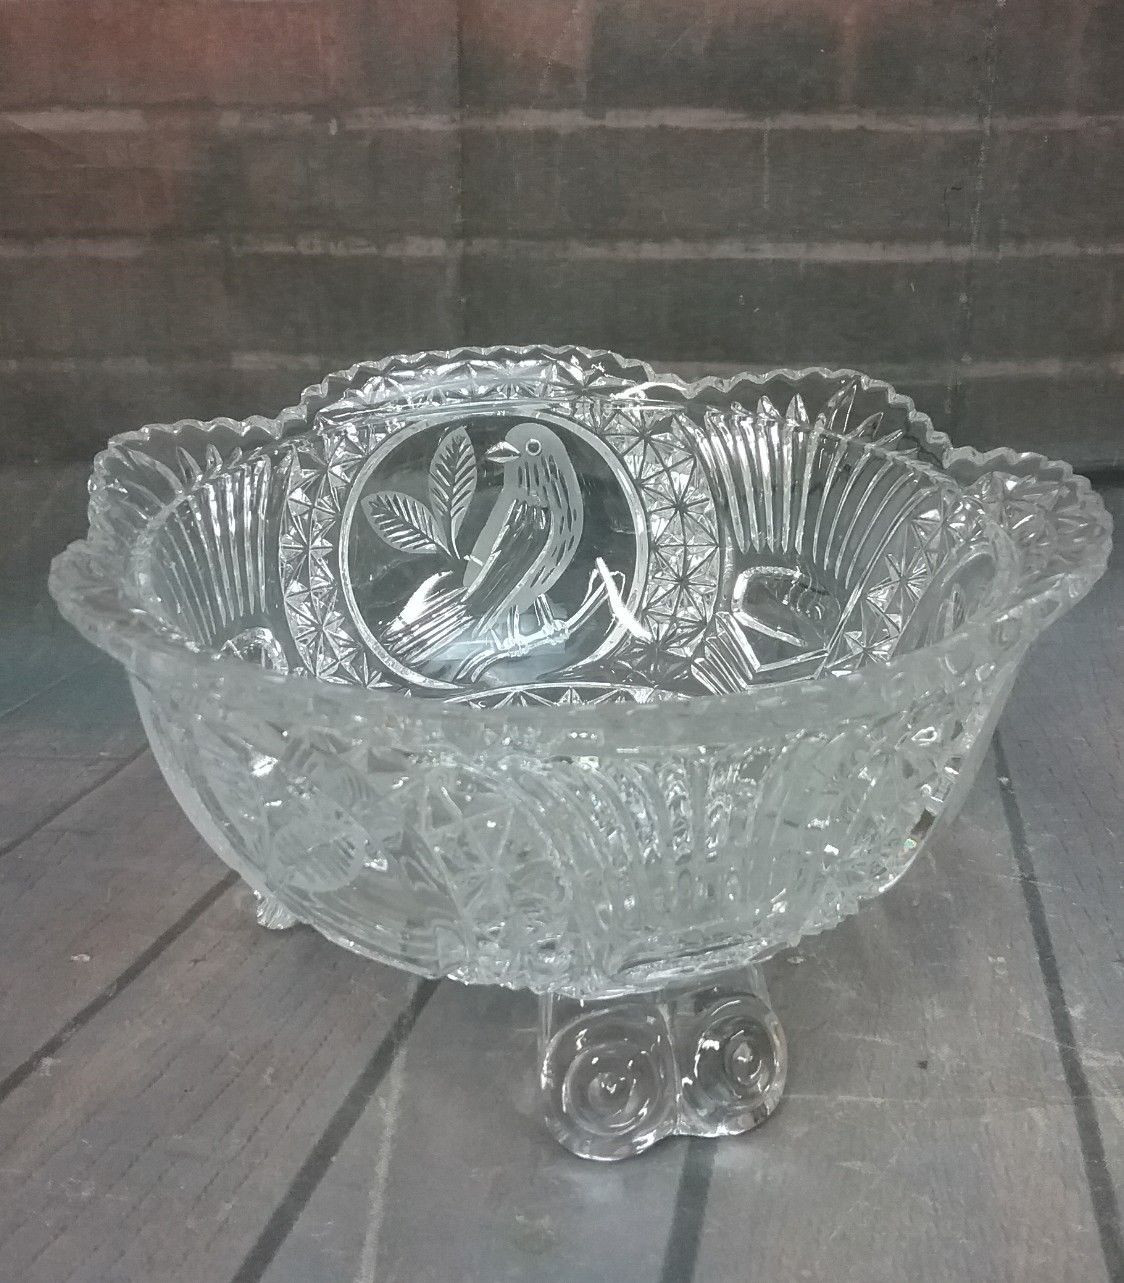 lead crystal cut glass vase of vtg hofbauer bird byrdes cut glass 7 5 crystal 3 toed bowl german throughout 1 of 5only 1 available